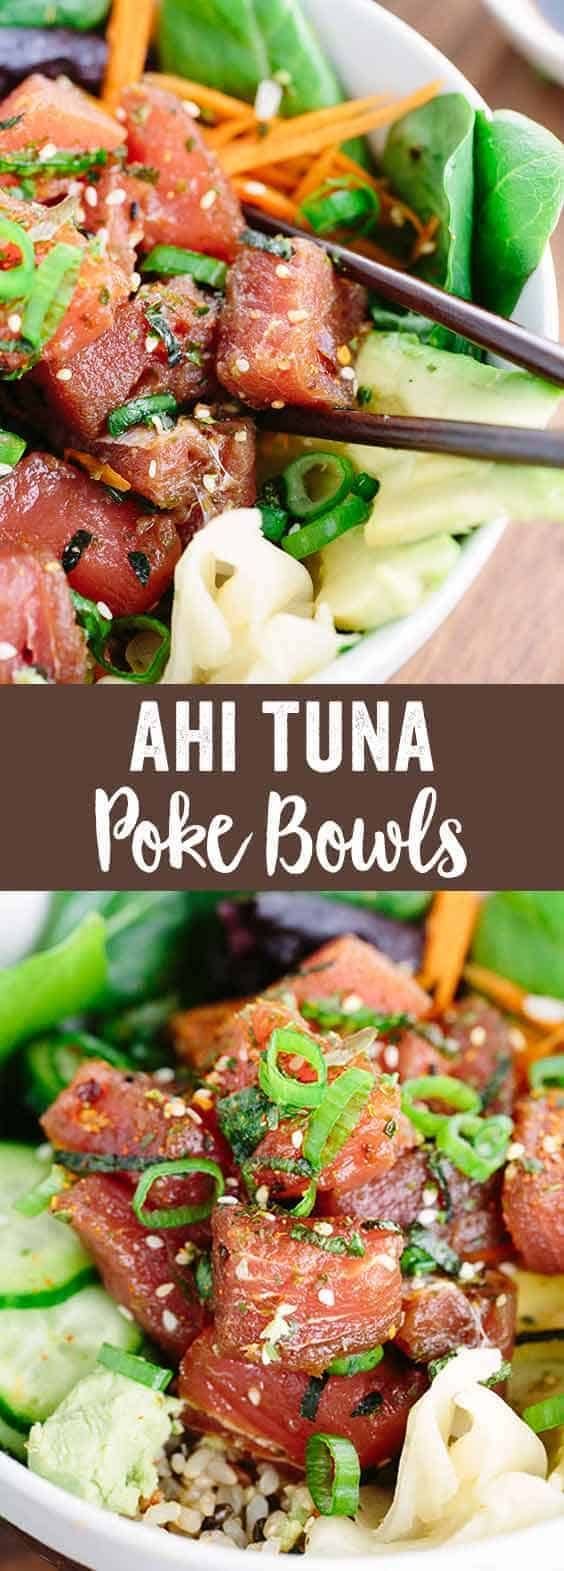 Homemade Poke Bowls with Ahi Tuna